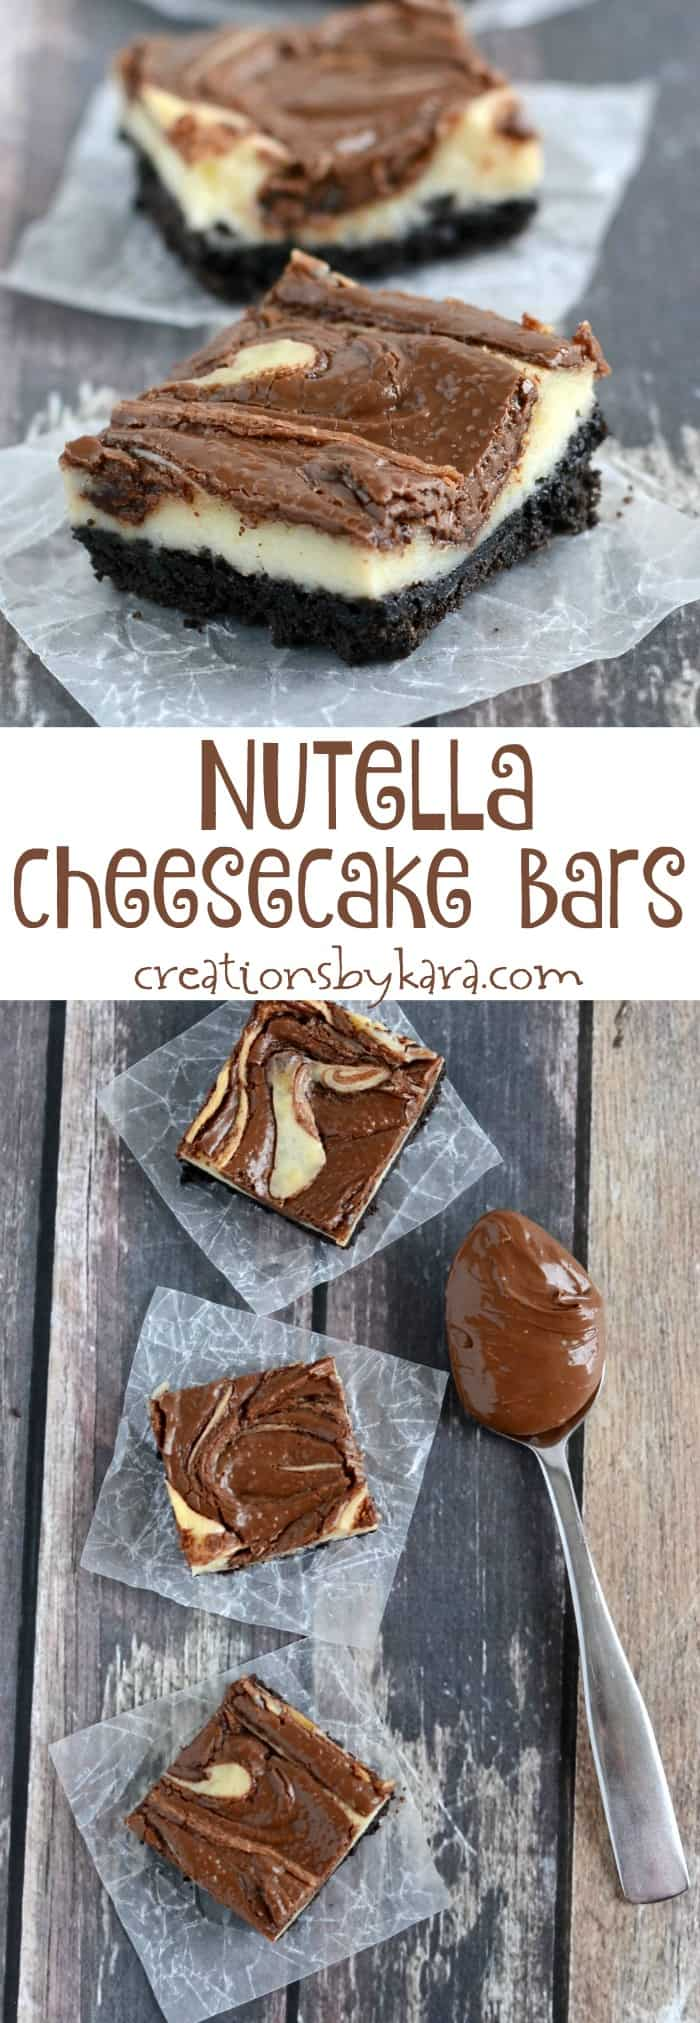 This creamy and delicious Nutella Cheesecake Bars are a cinch to make. And they taste fantastic!